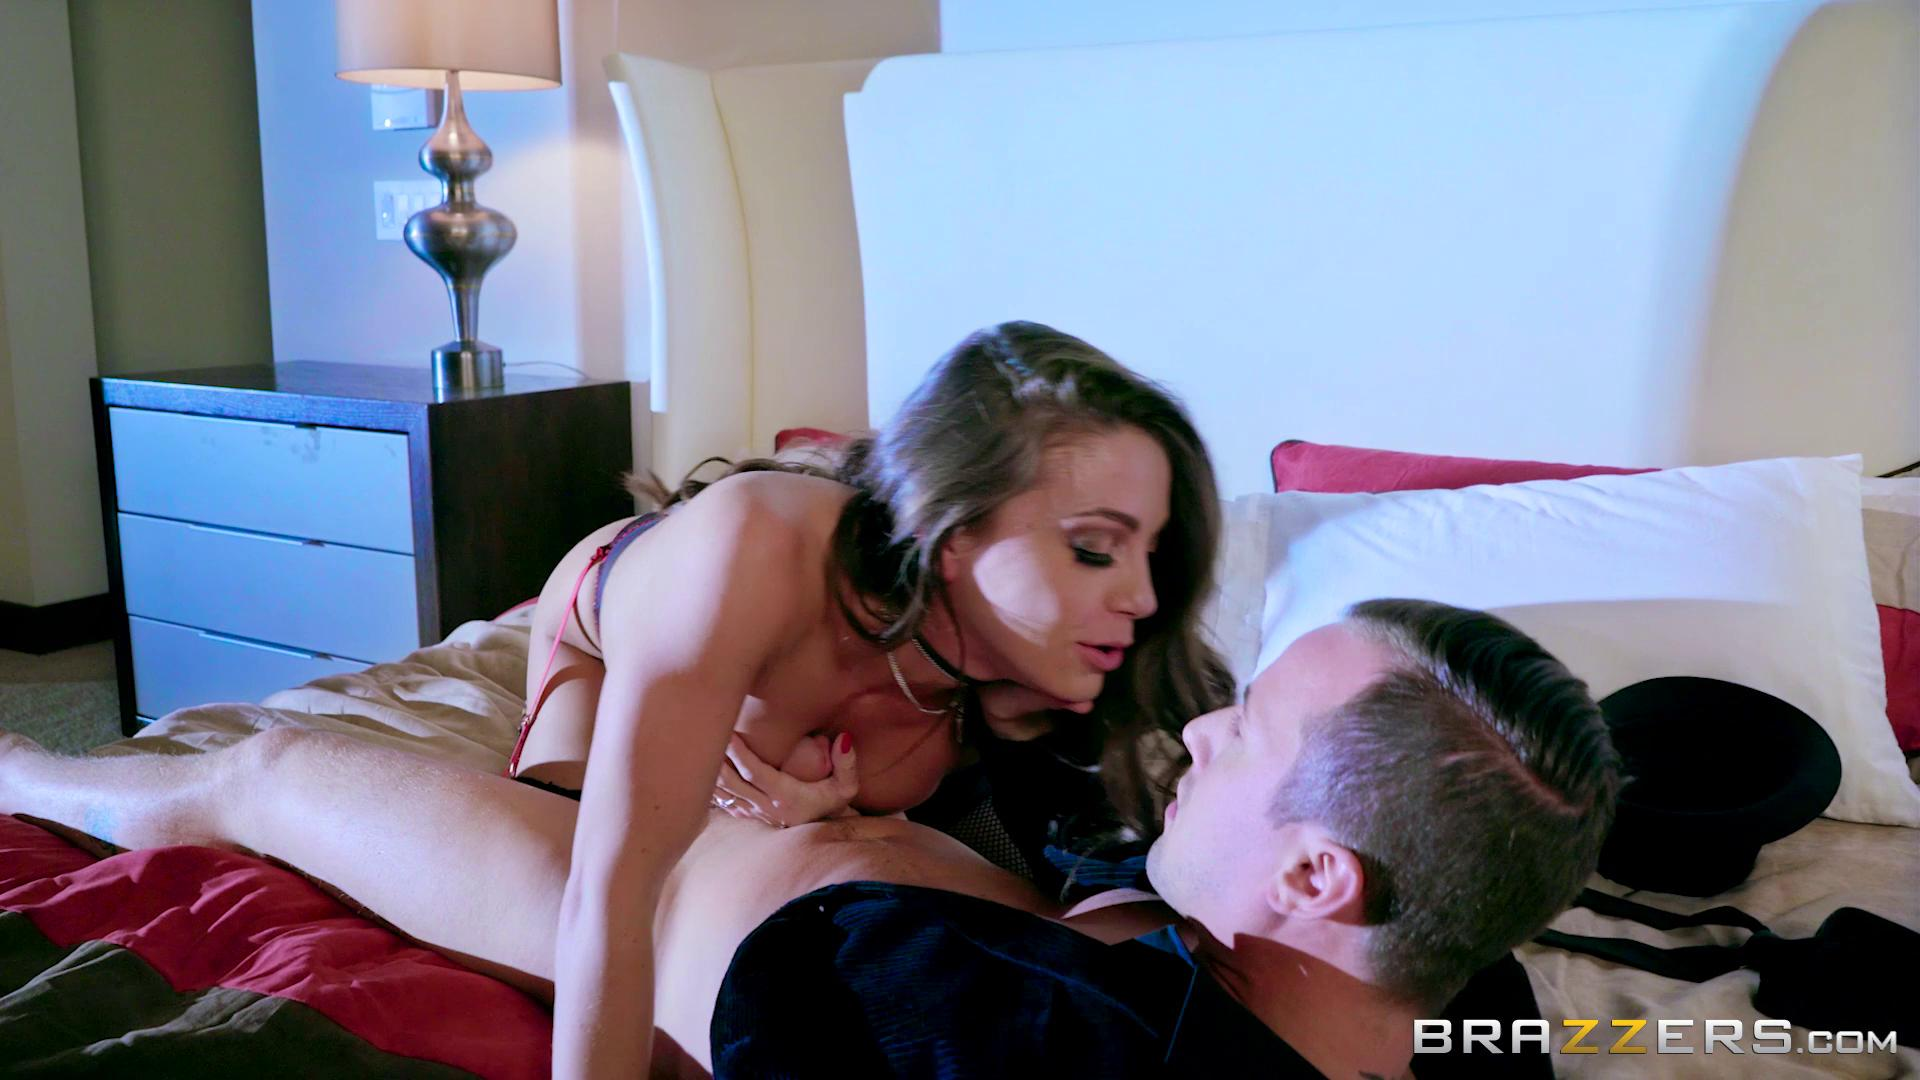 PornstarsLikeItBig – Abigail Mac My Night With A Pornstar